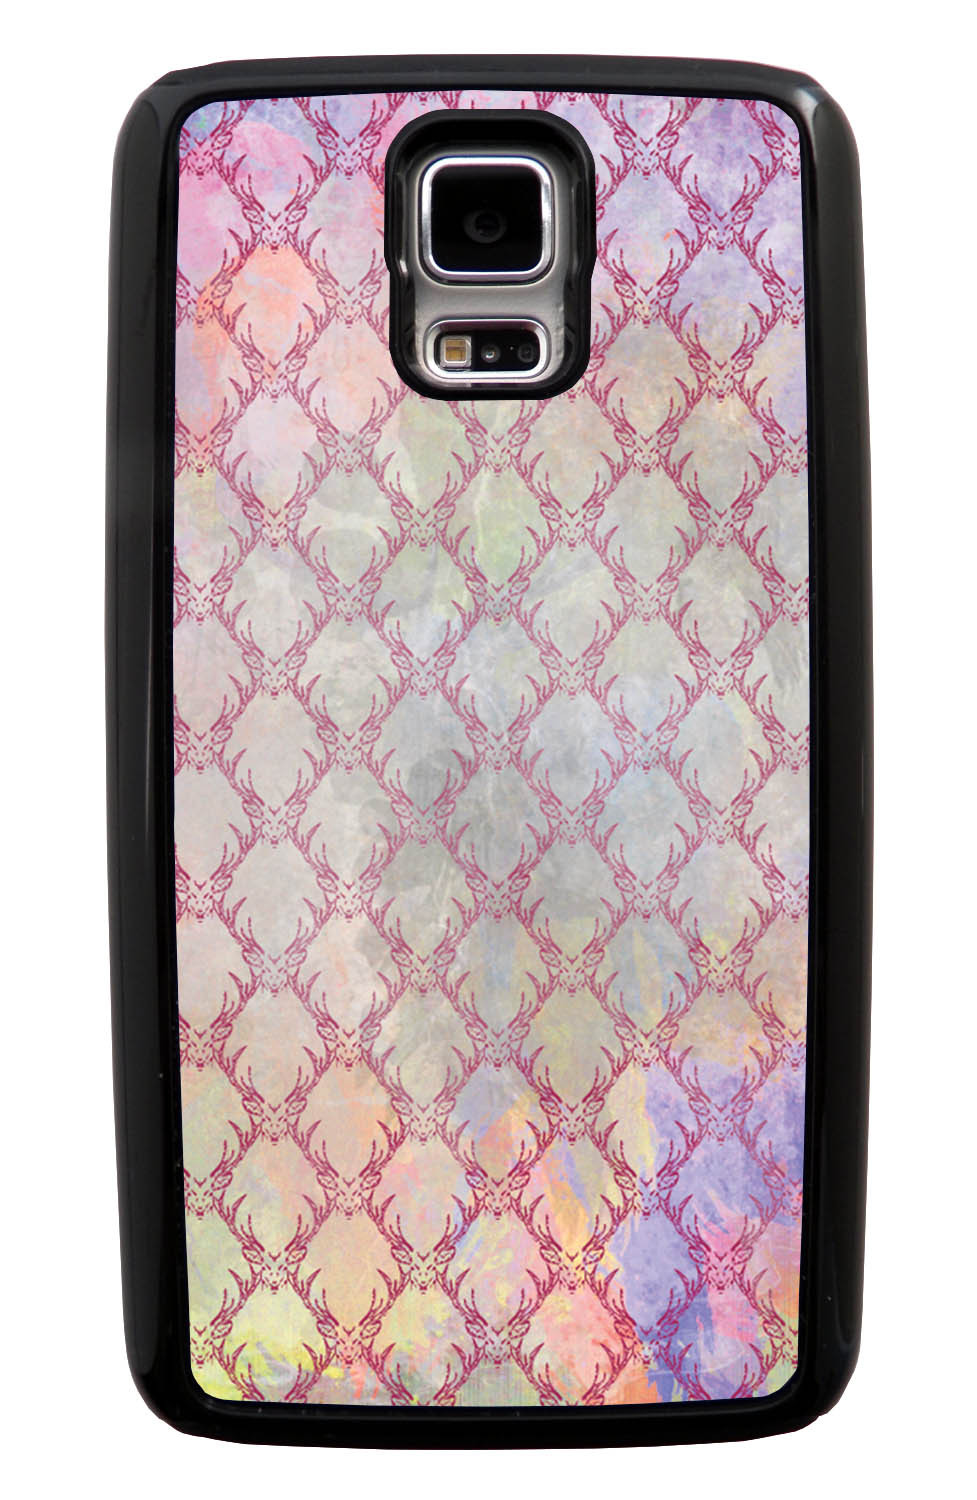 Samsung Galaxy S5 / SV Deer Case - Color Splash with Deer Mount Pattern Overlay